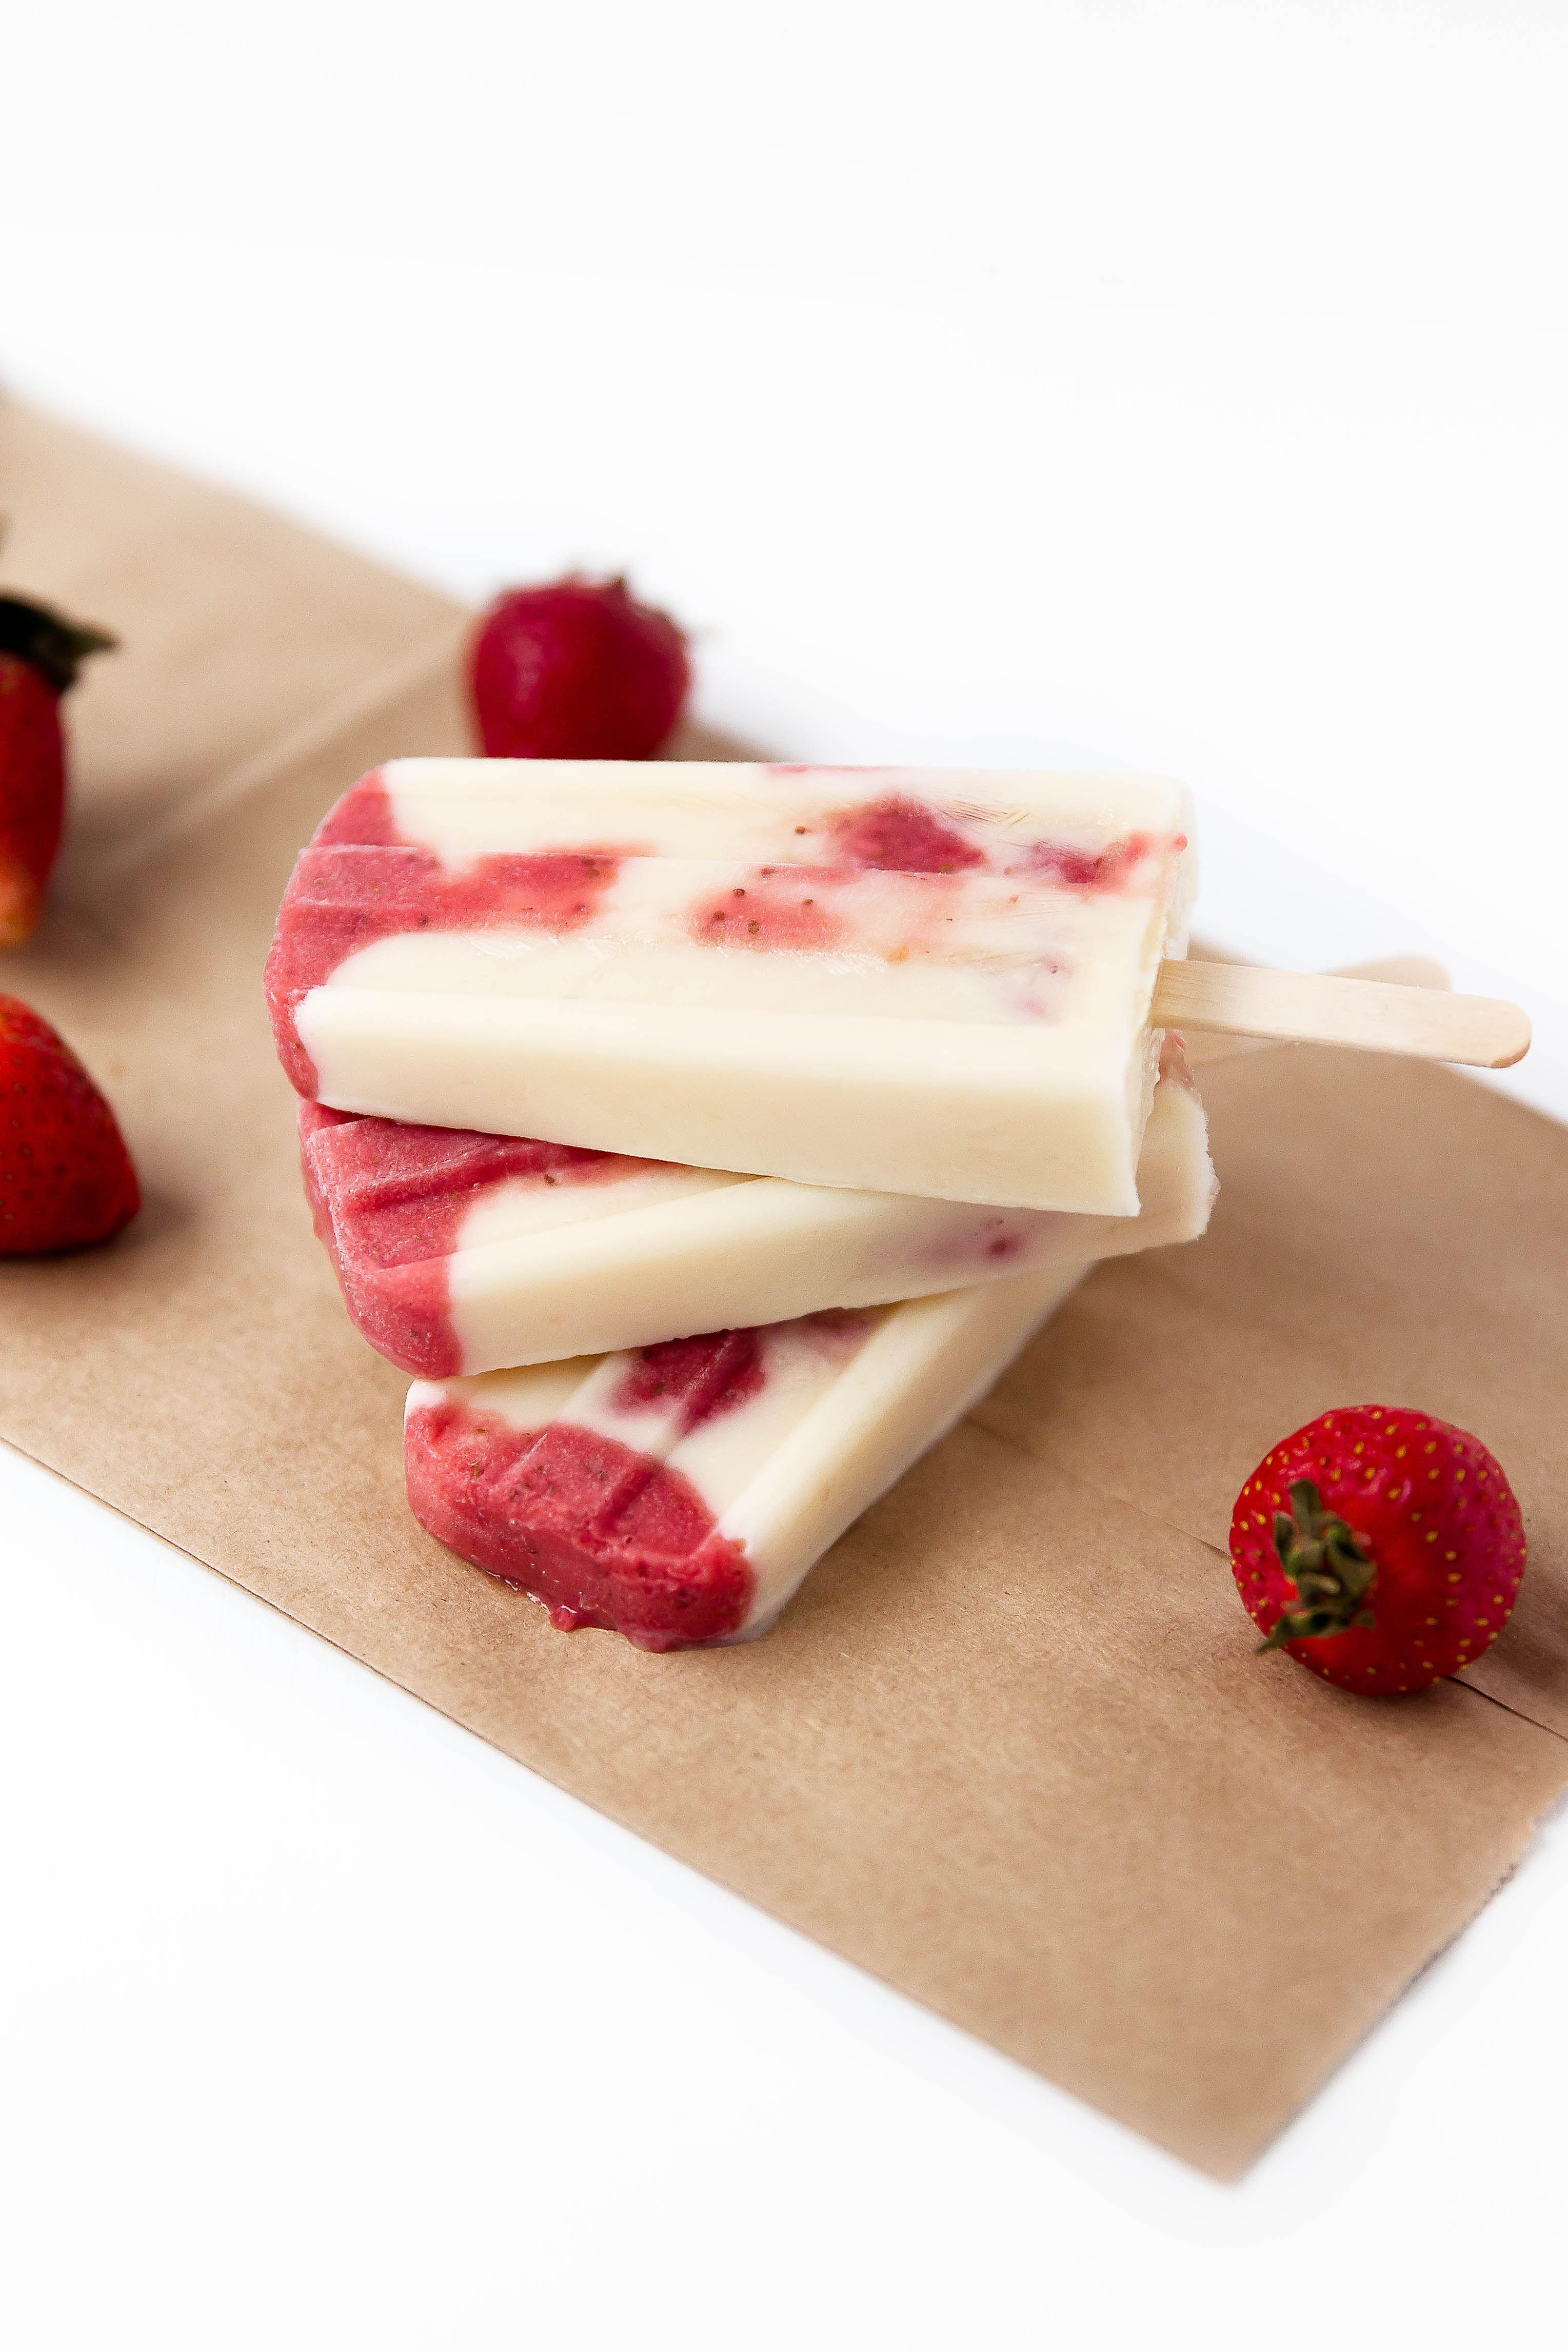 Skinny Strawberries and Cream Popsicles: layers of roasted strawberries and greek yogurt make these popsicles a bikini-welcome summer treat!